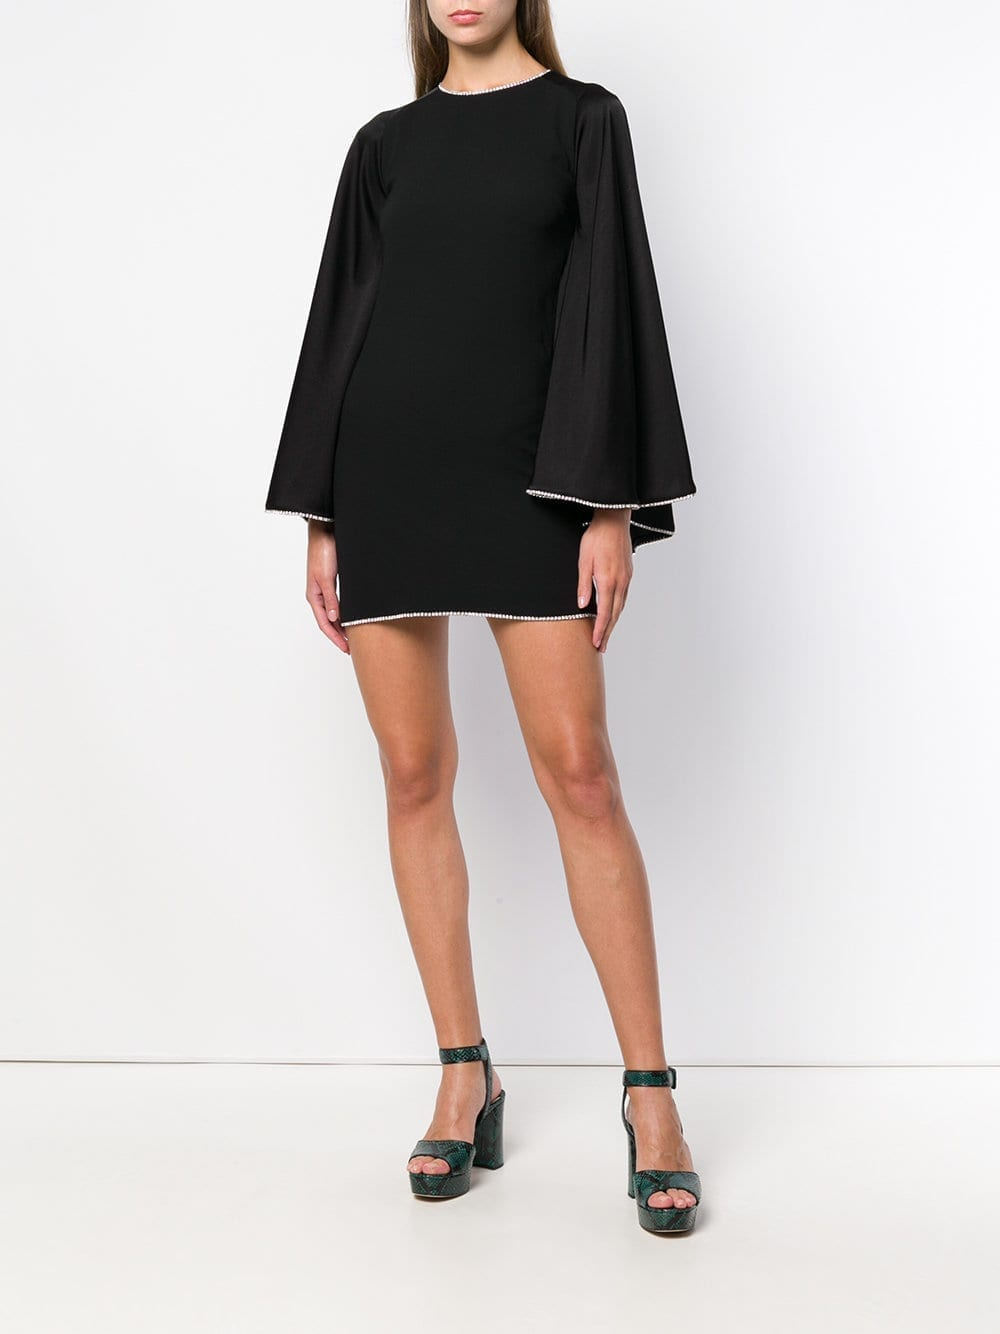 SONIA RYKIEL Crystal Trimmed Black Dress